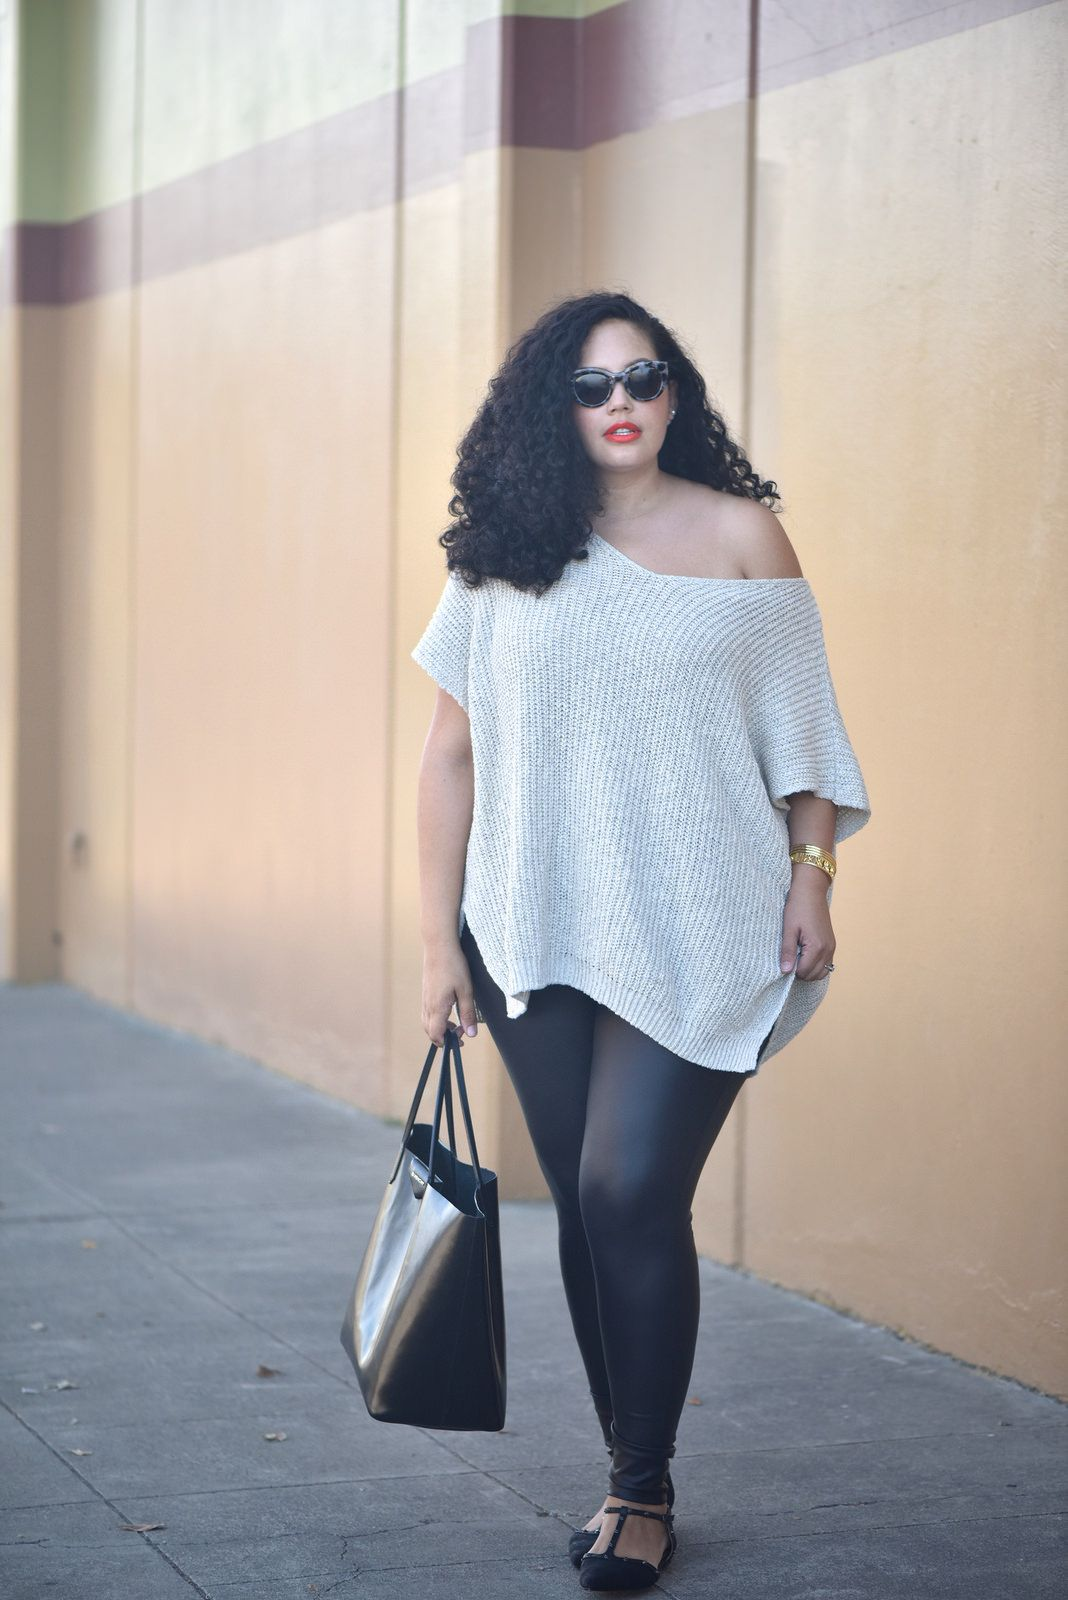 bfb7d2cf9470 Plus Size Fashion - Plus Size Outfit - Oversize Sweater